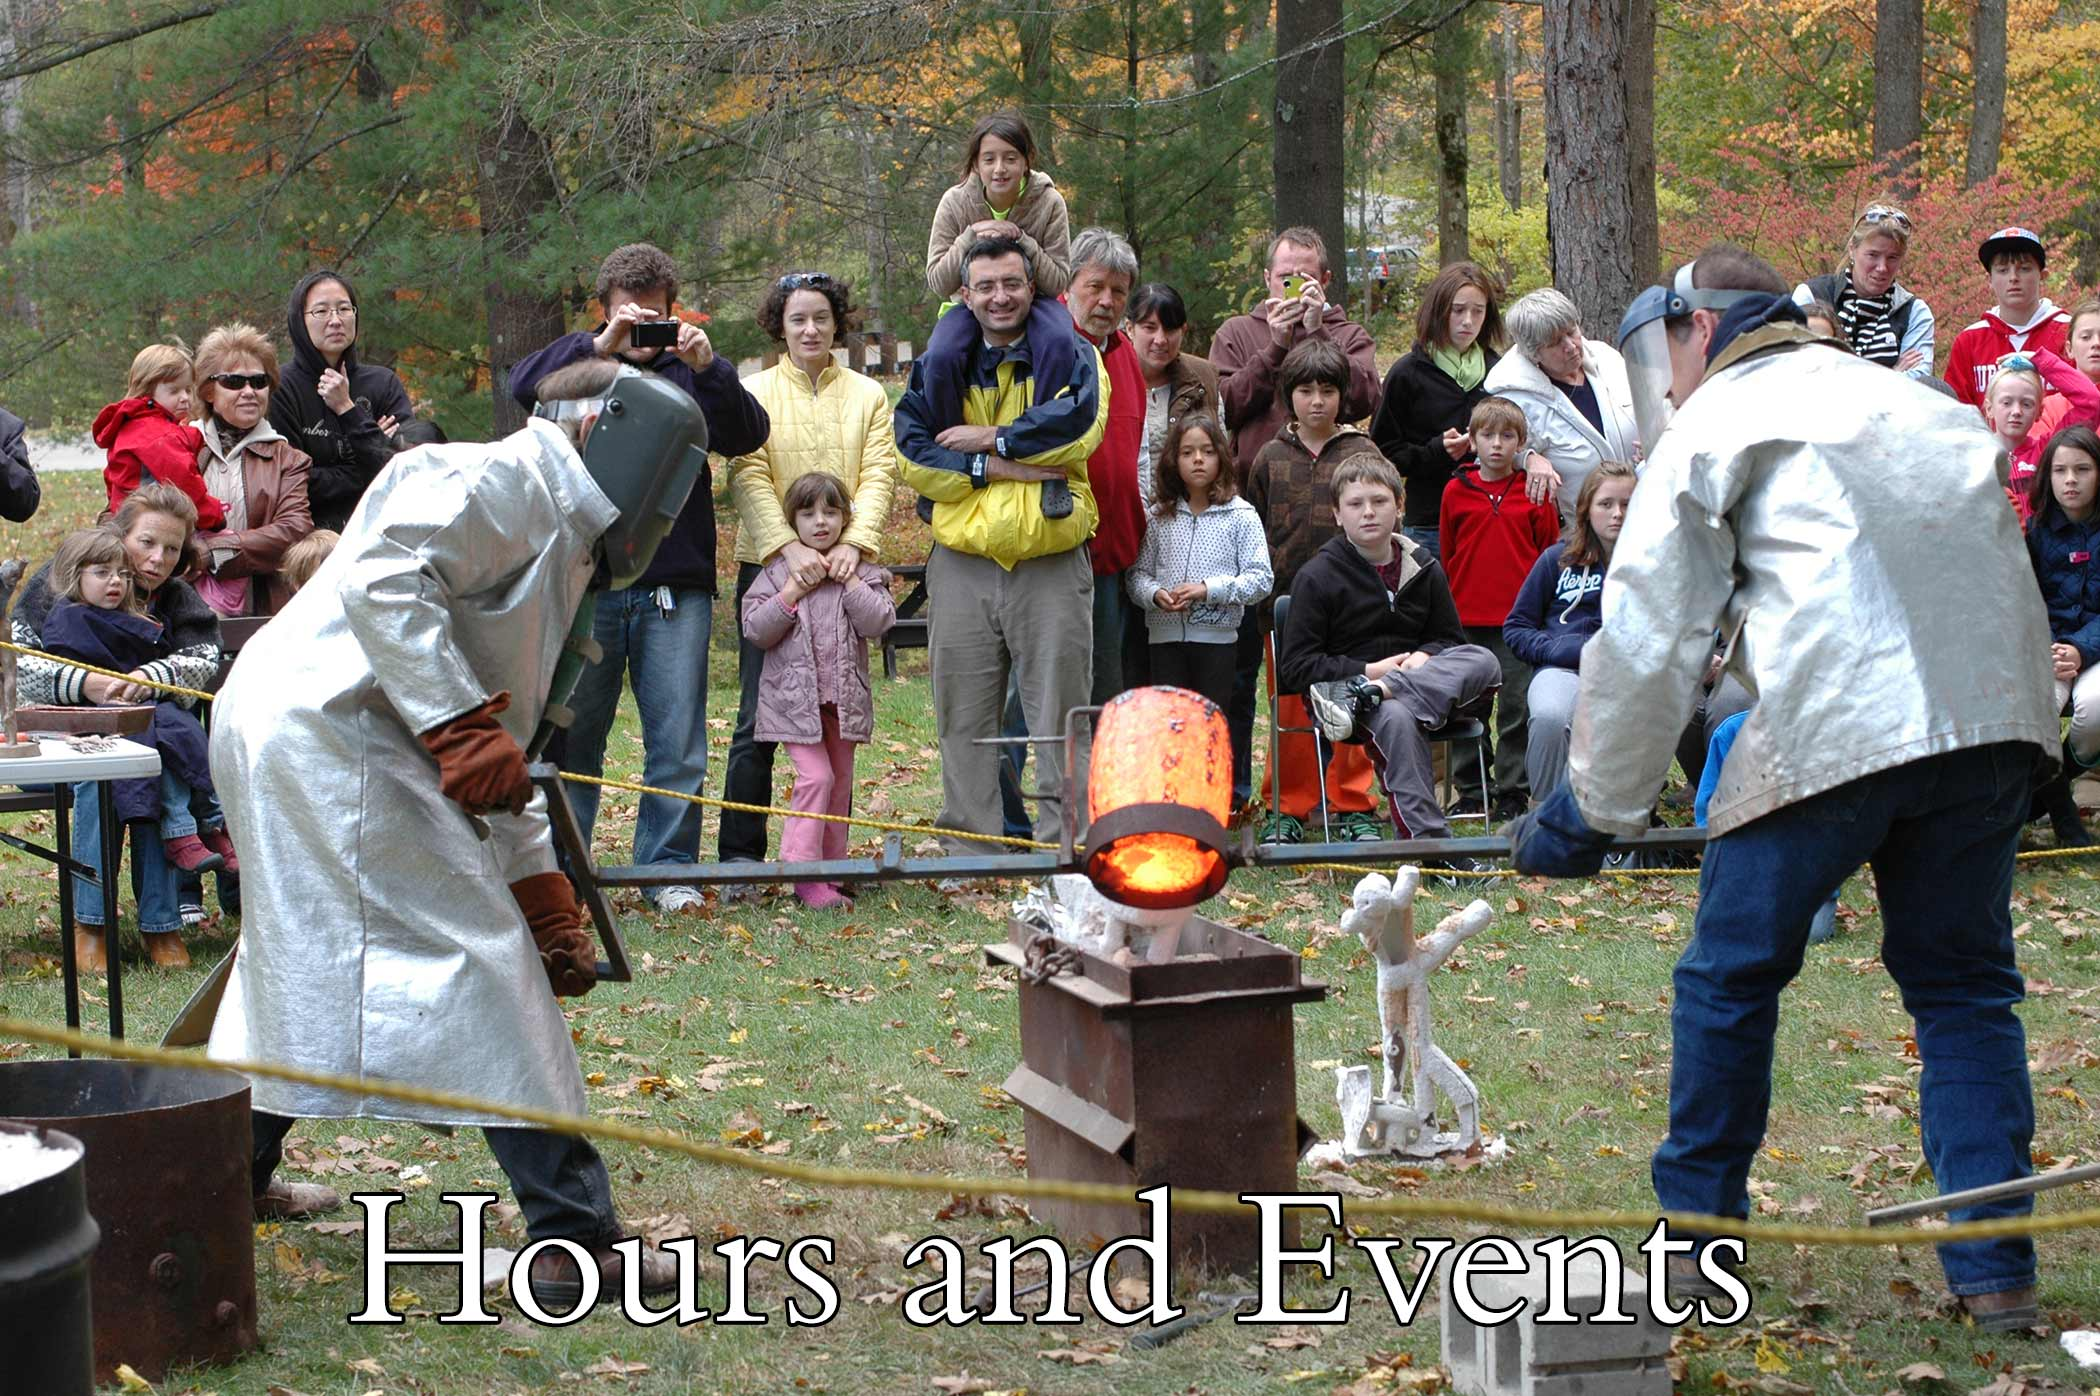 Bronze casting demonstration by sculptor Andrew DeVries at the Clark Art Institute in 2010.